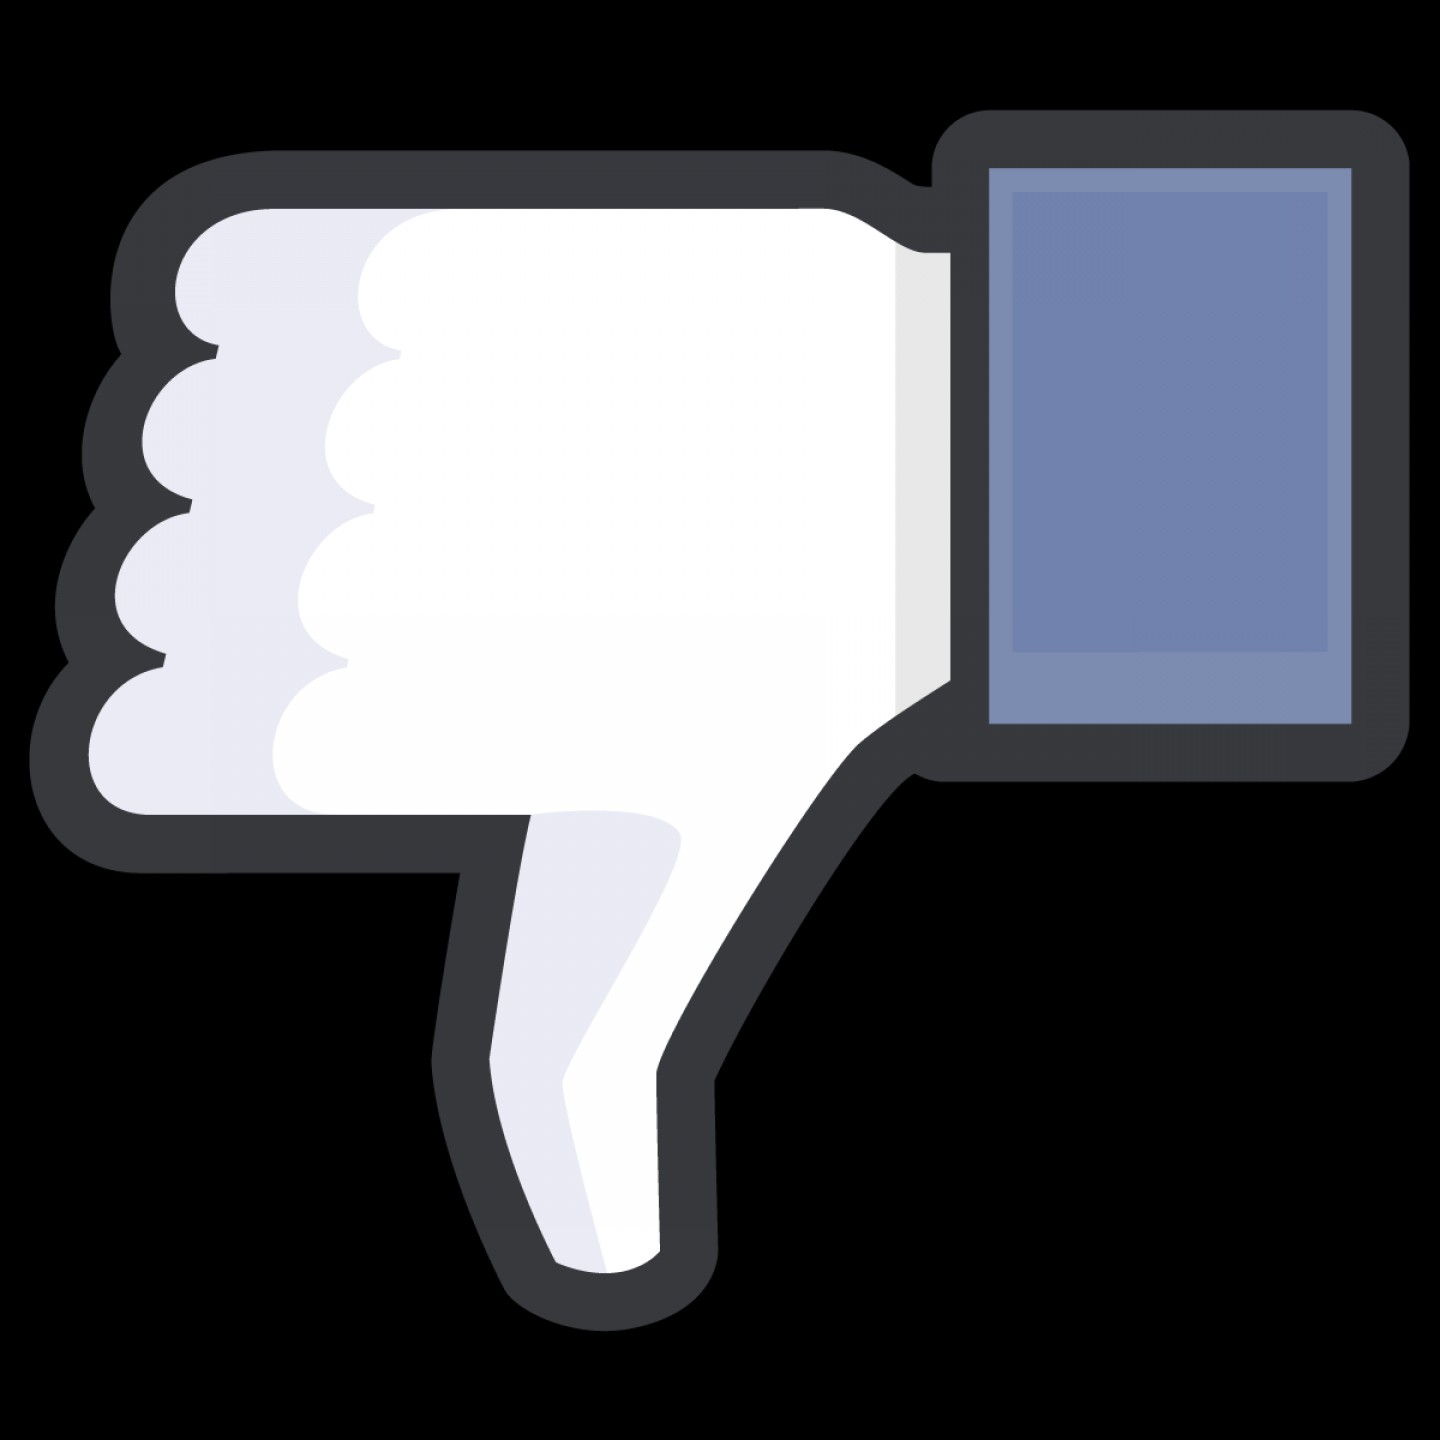 Black Facebook Logo Vector: Facebook Thumbs Down Icon Black Outline